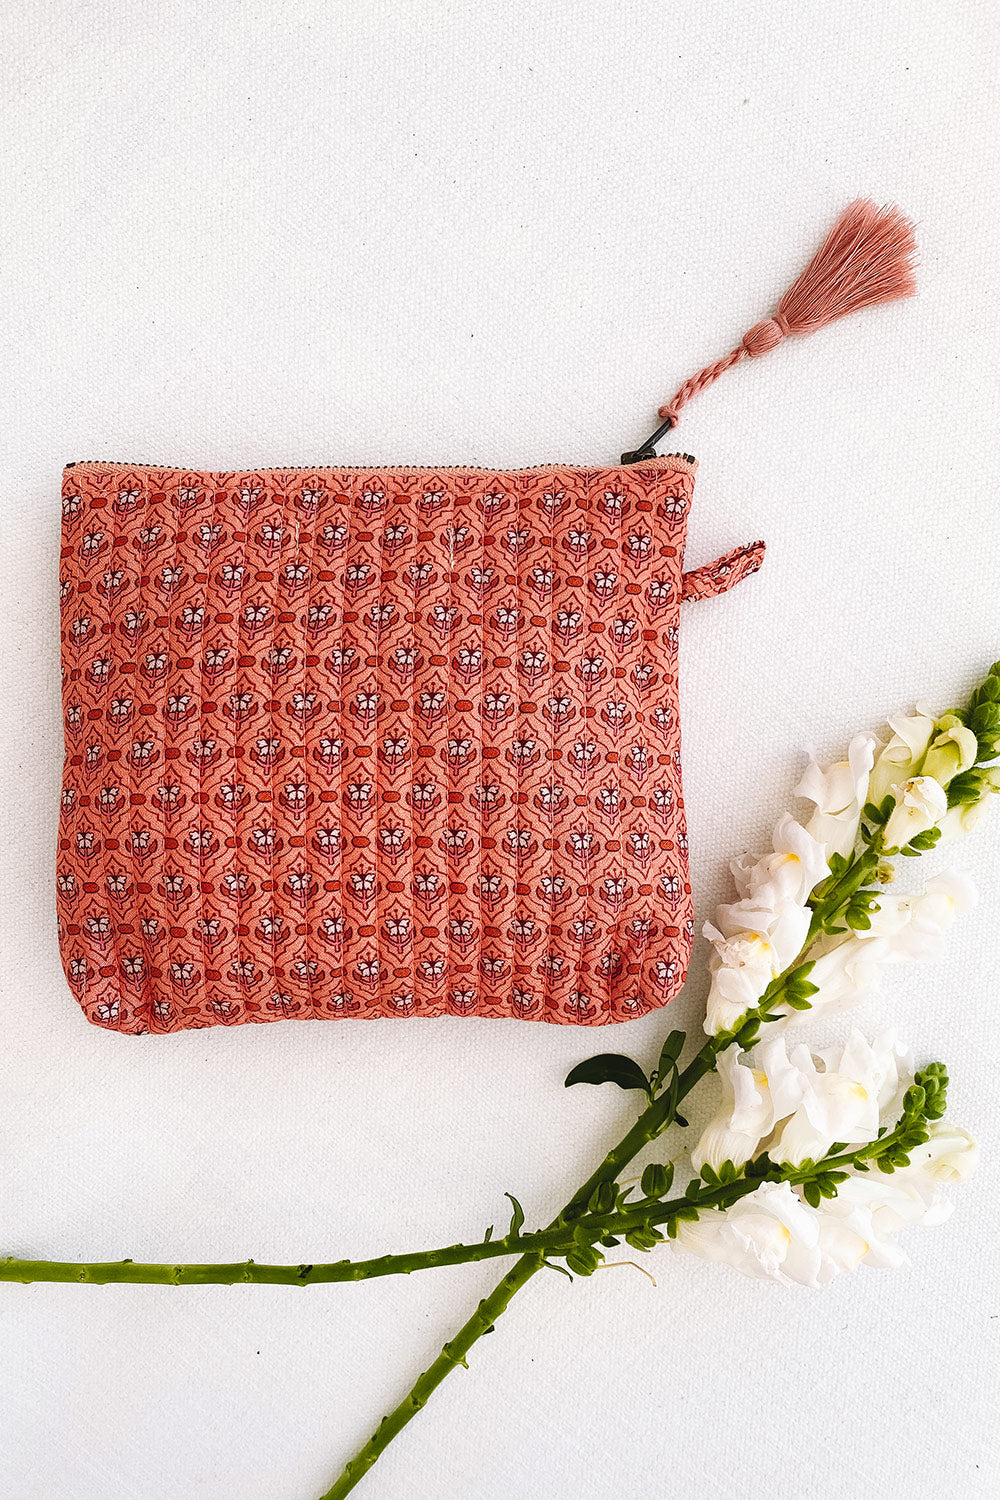 Fleetwood Revive Pouch in Tile Peach